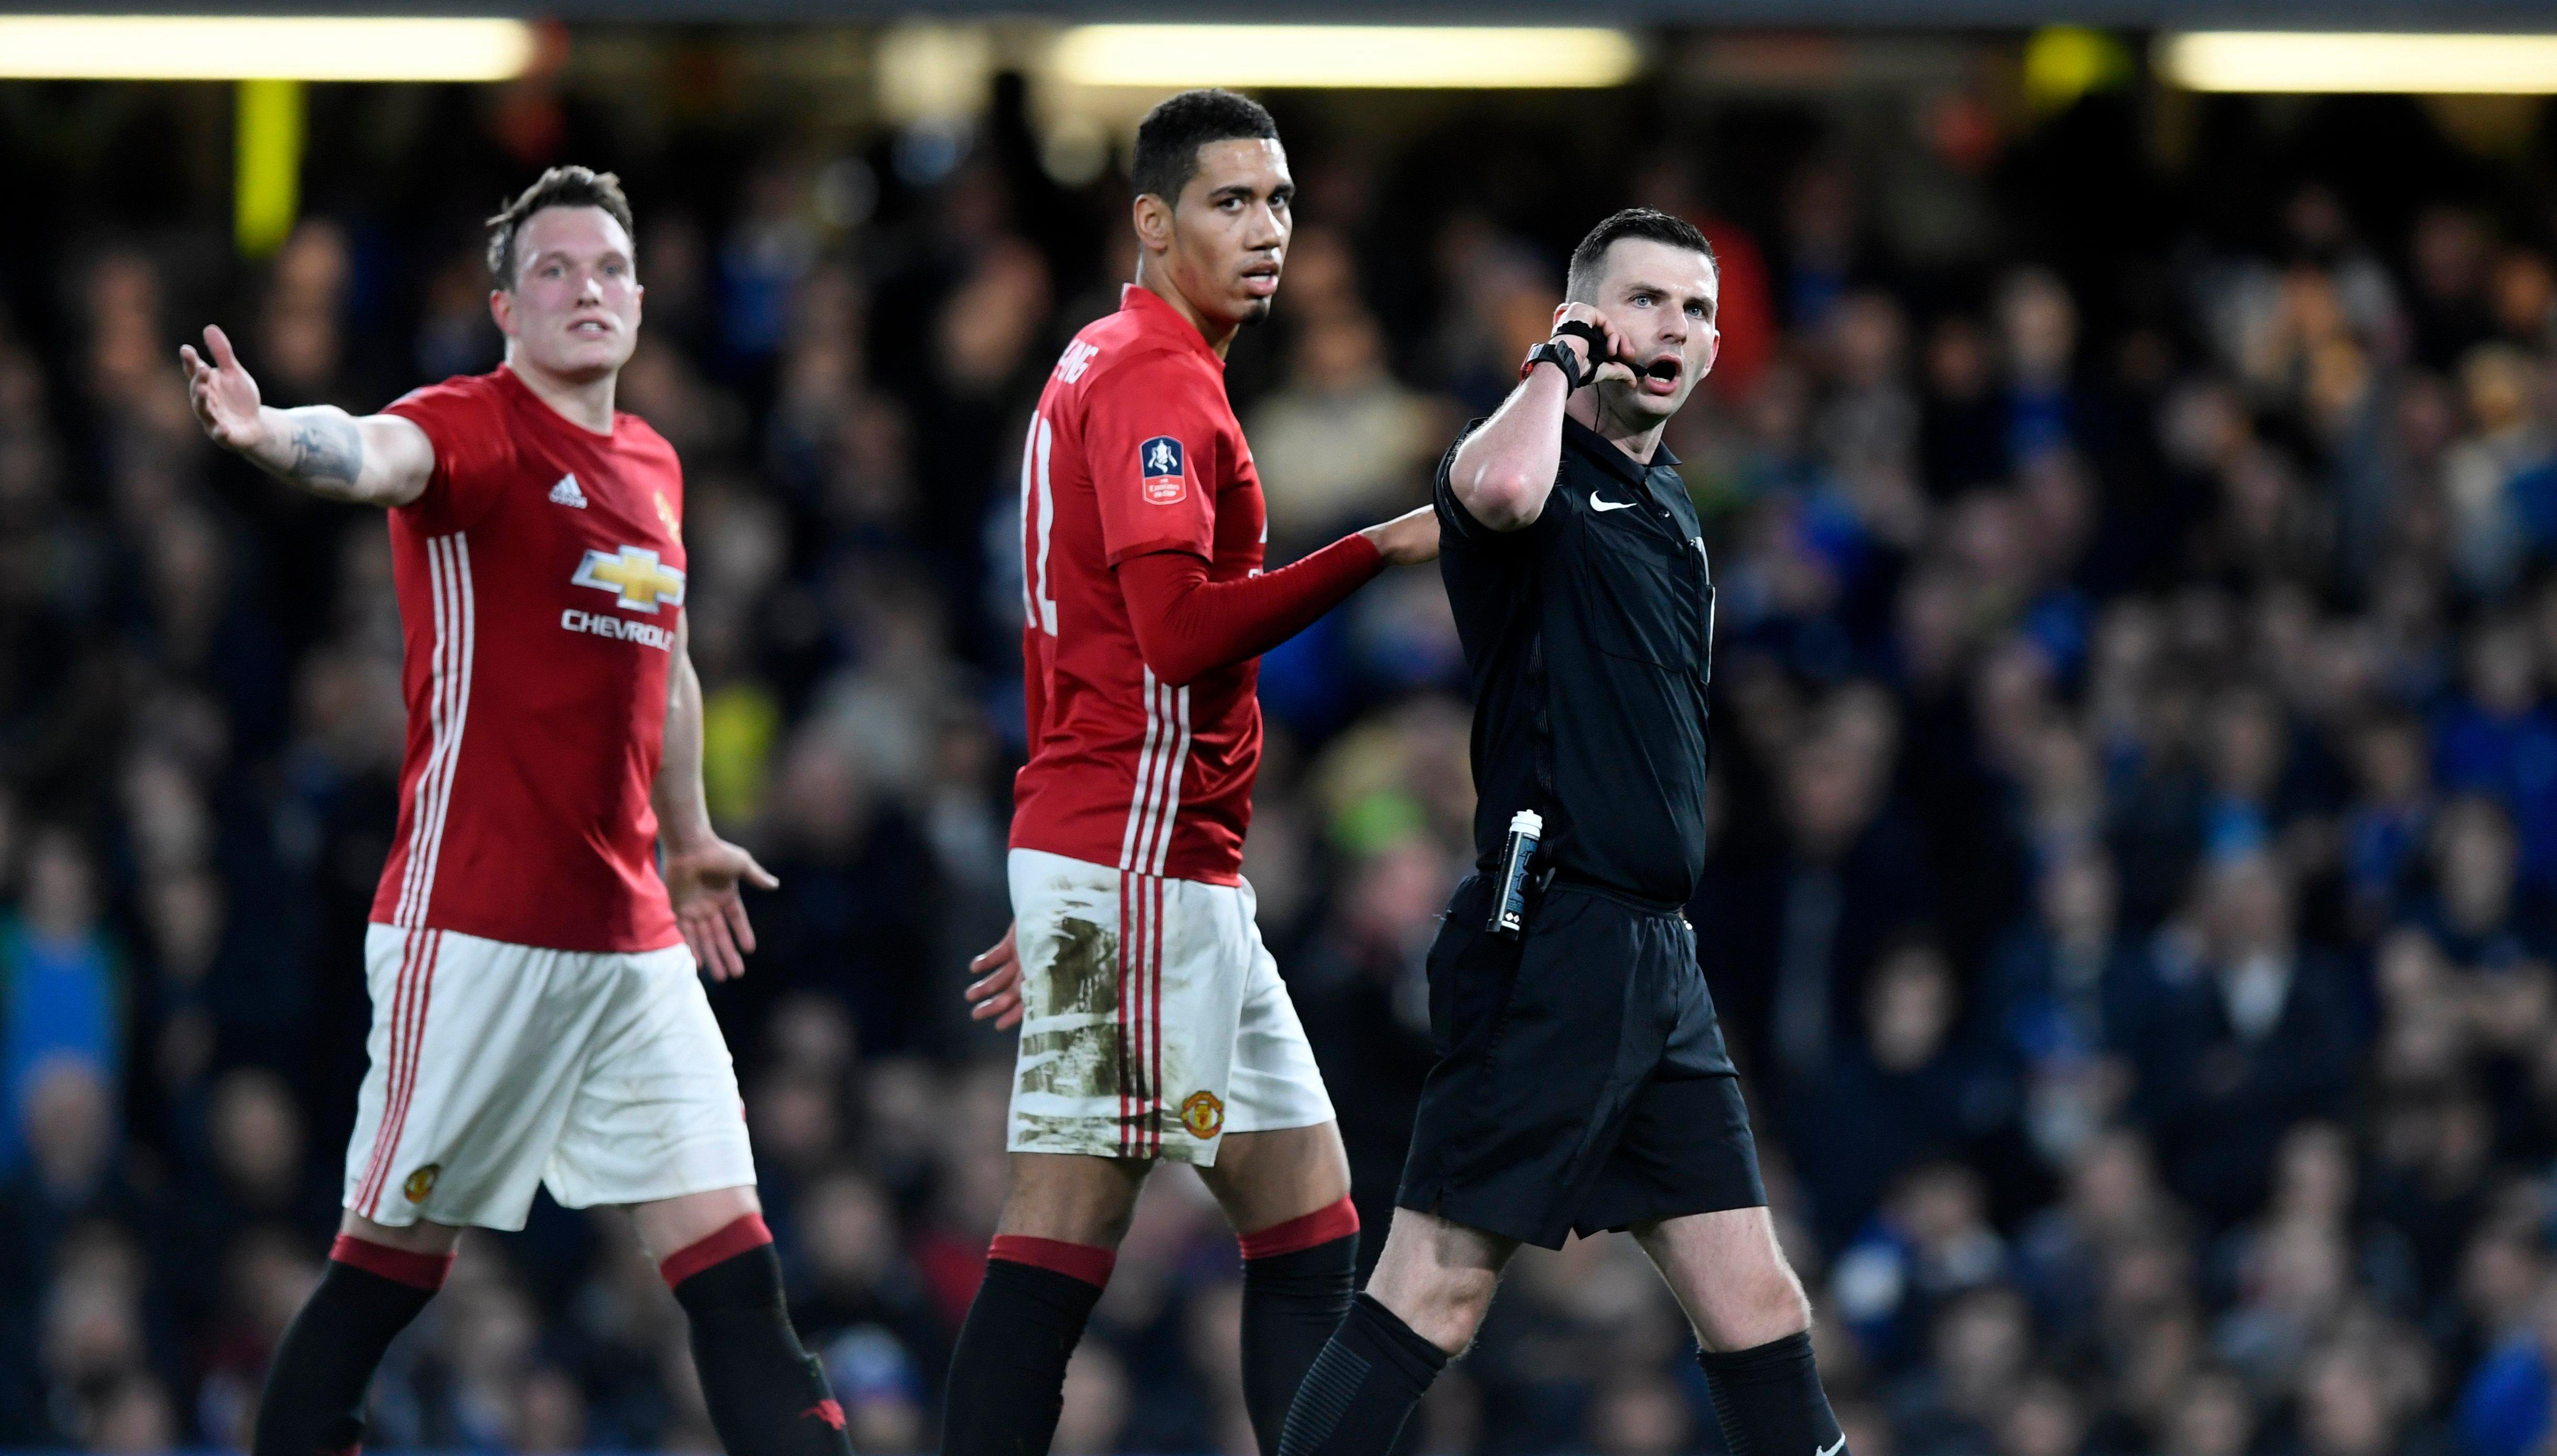 Chris Smalling and Phil Jones have both suffered with injuries this season